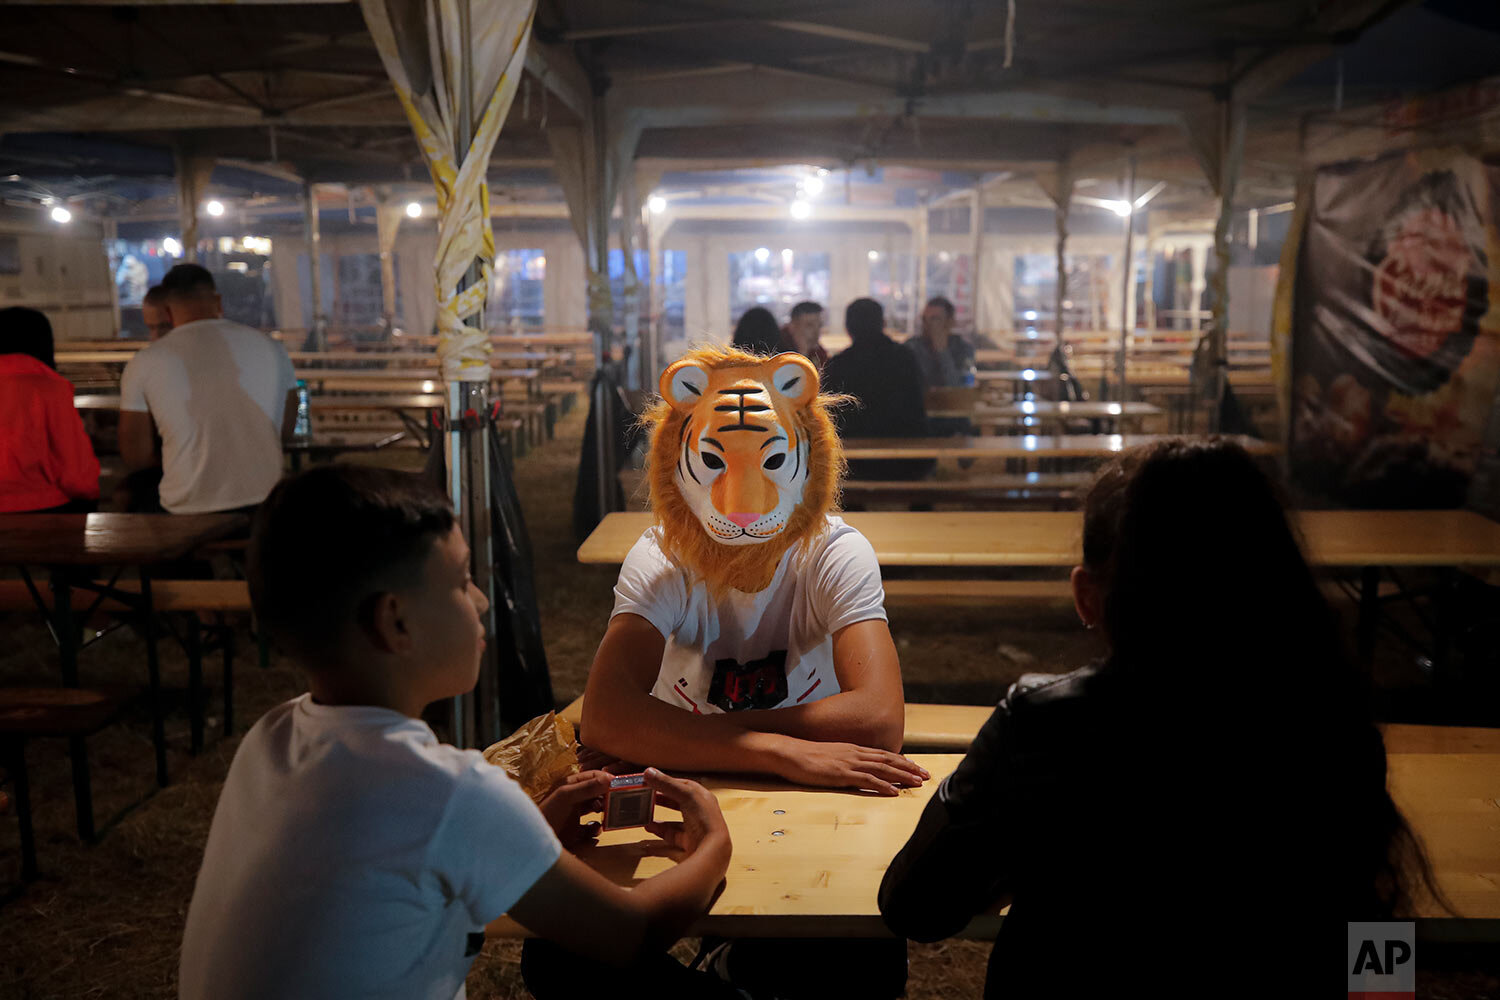 Children, one wearing a tiger mask, sit at a table in the food area of an autumn fair in Titu, southern Romania, Sept. 12, 2019. (AP Photo/Vadim Ghirda)